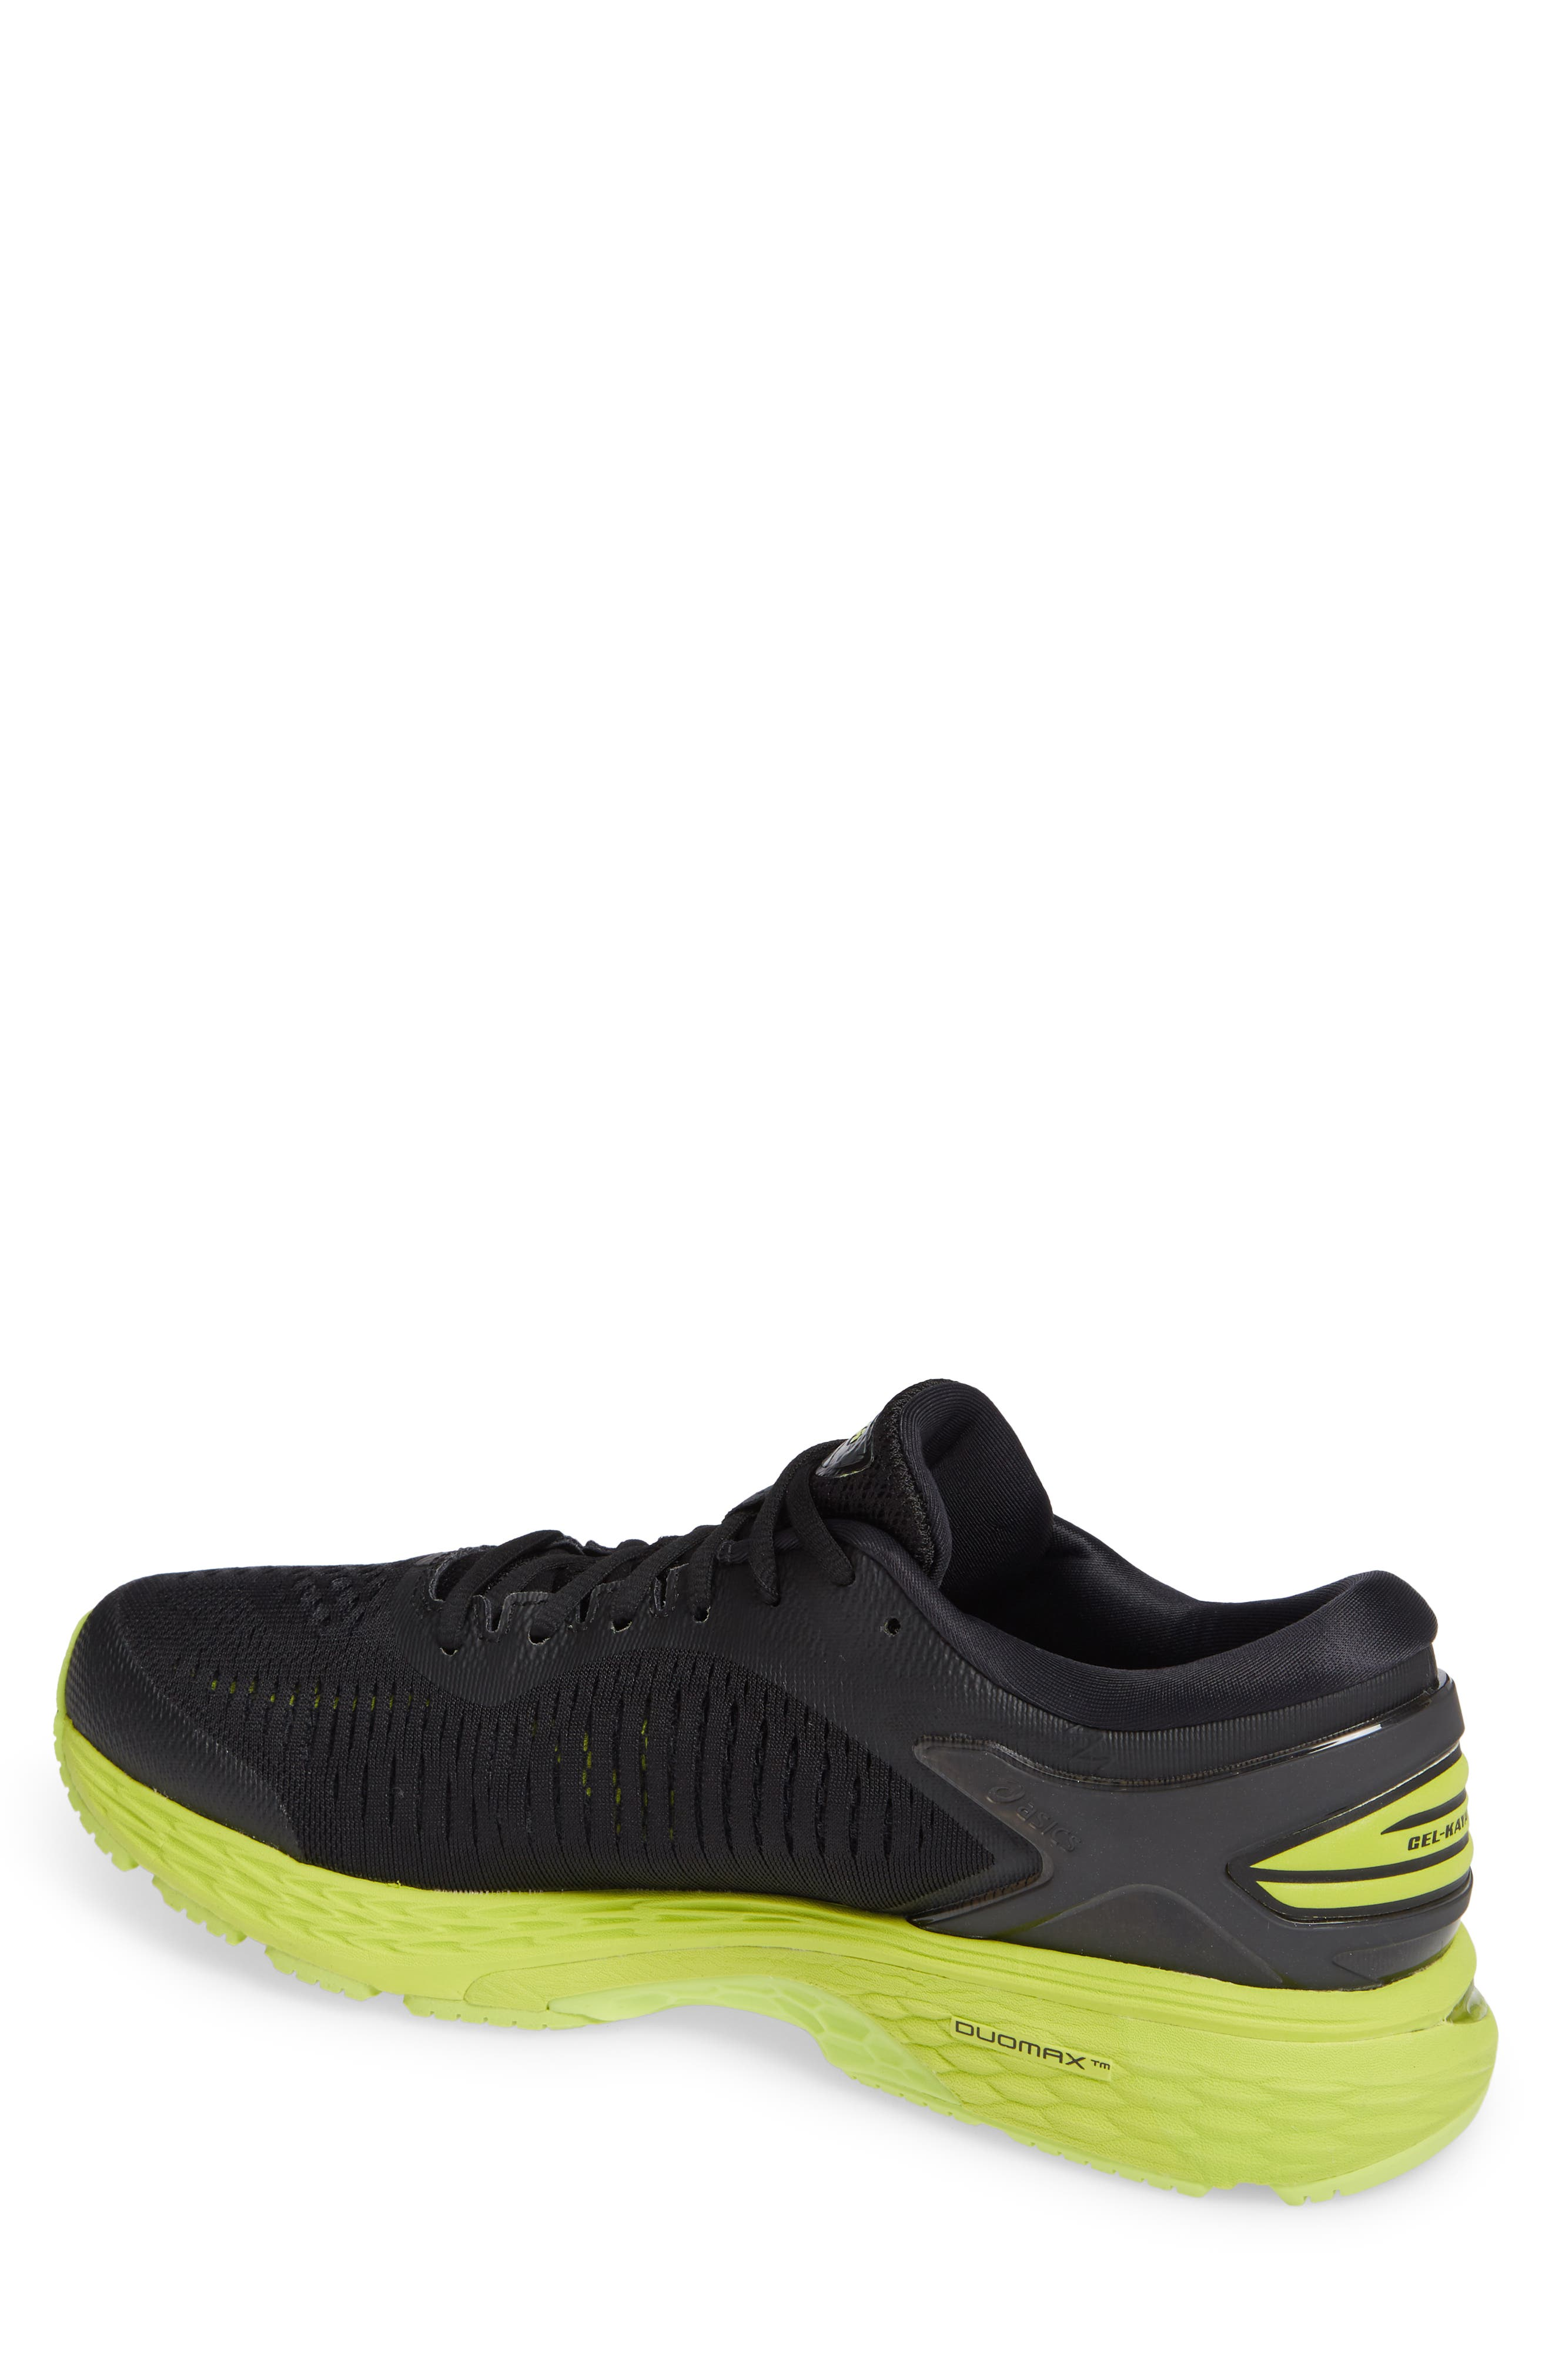 GEL-Kayano<sup>®</sup> 25 Running Shoe,                             Alternate thumbnail 2, color,                             BLACK/ NEON LIME